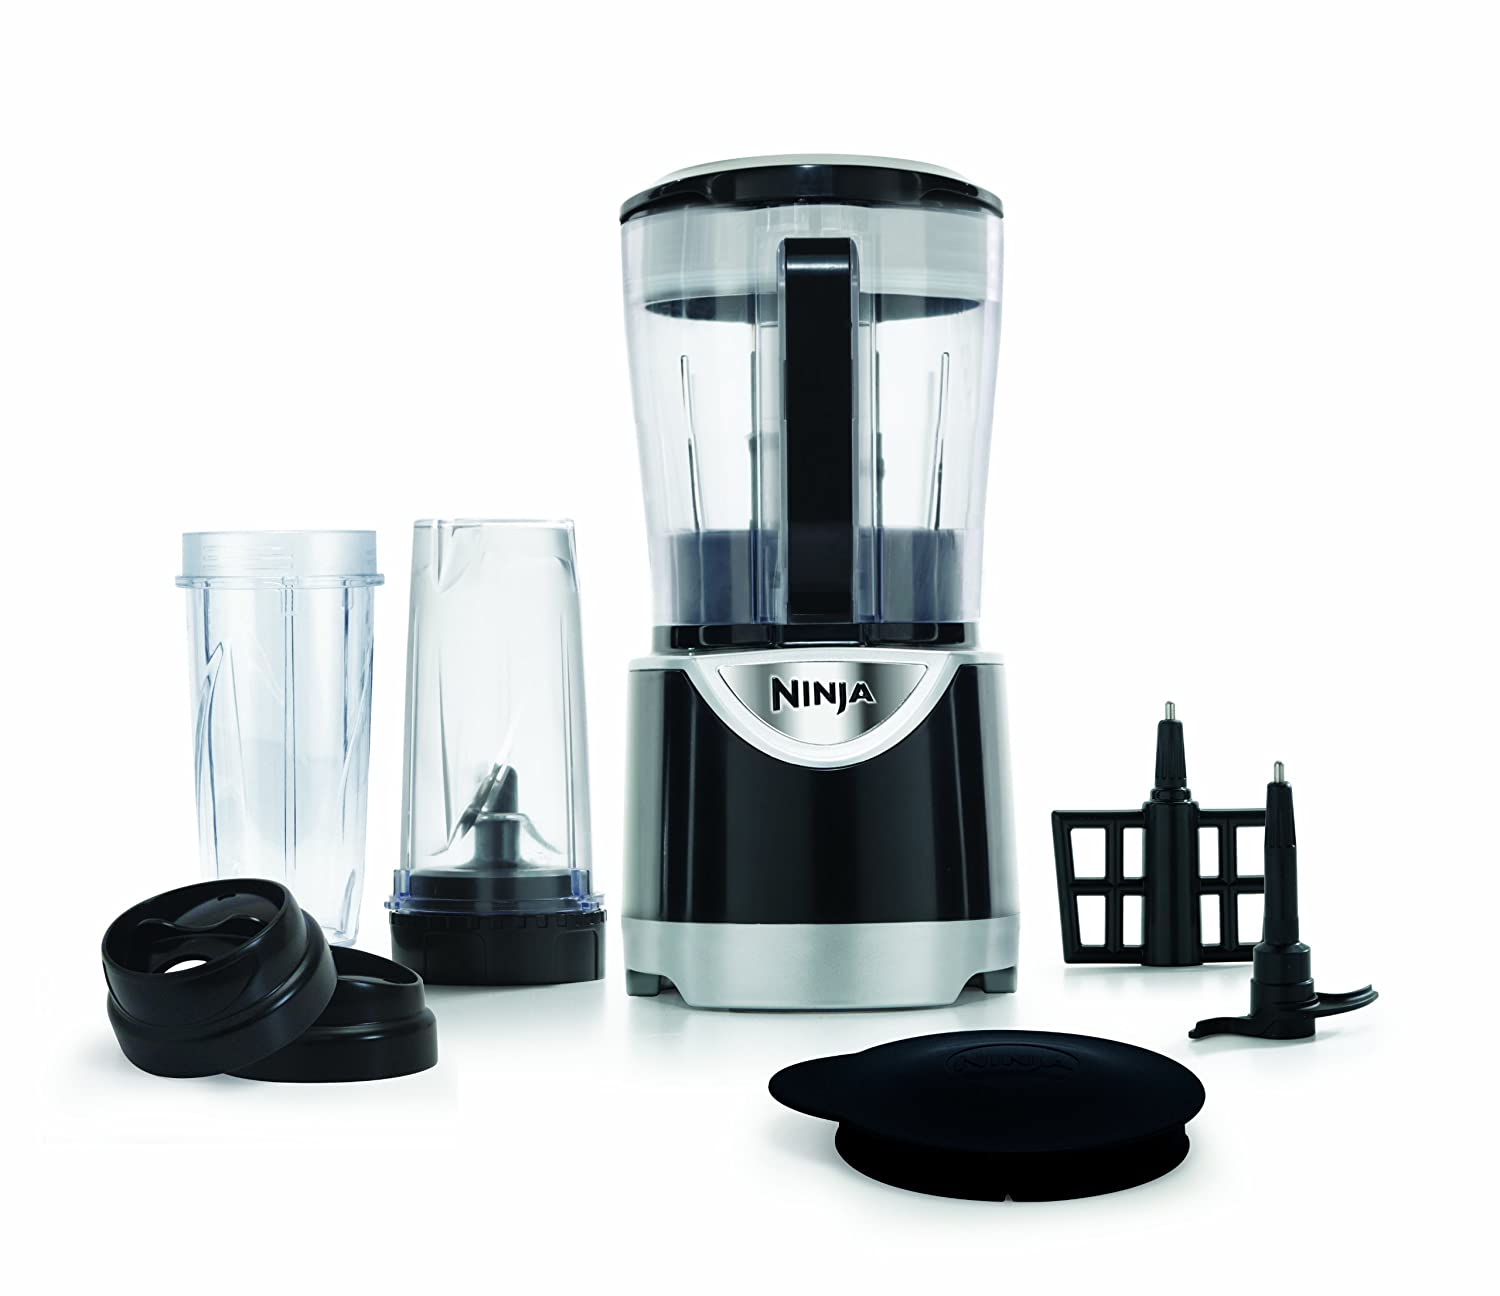 Amazon.com: Ninja Kitchen System Pulse BL201: Electric Countertop